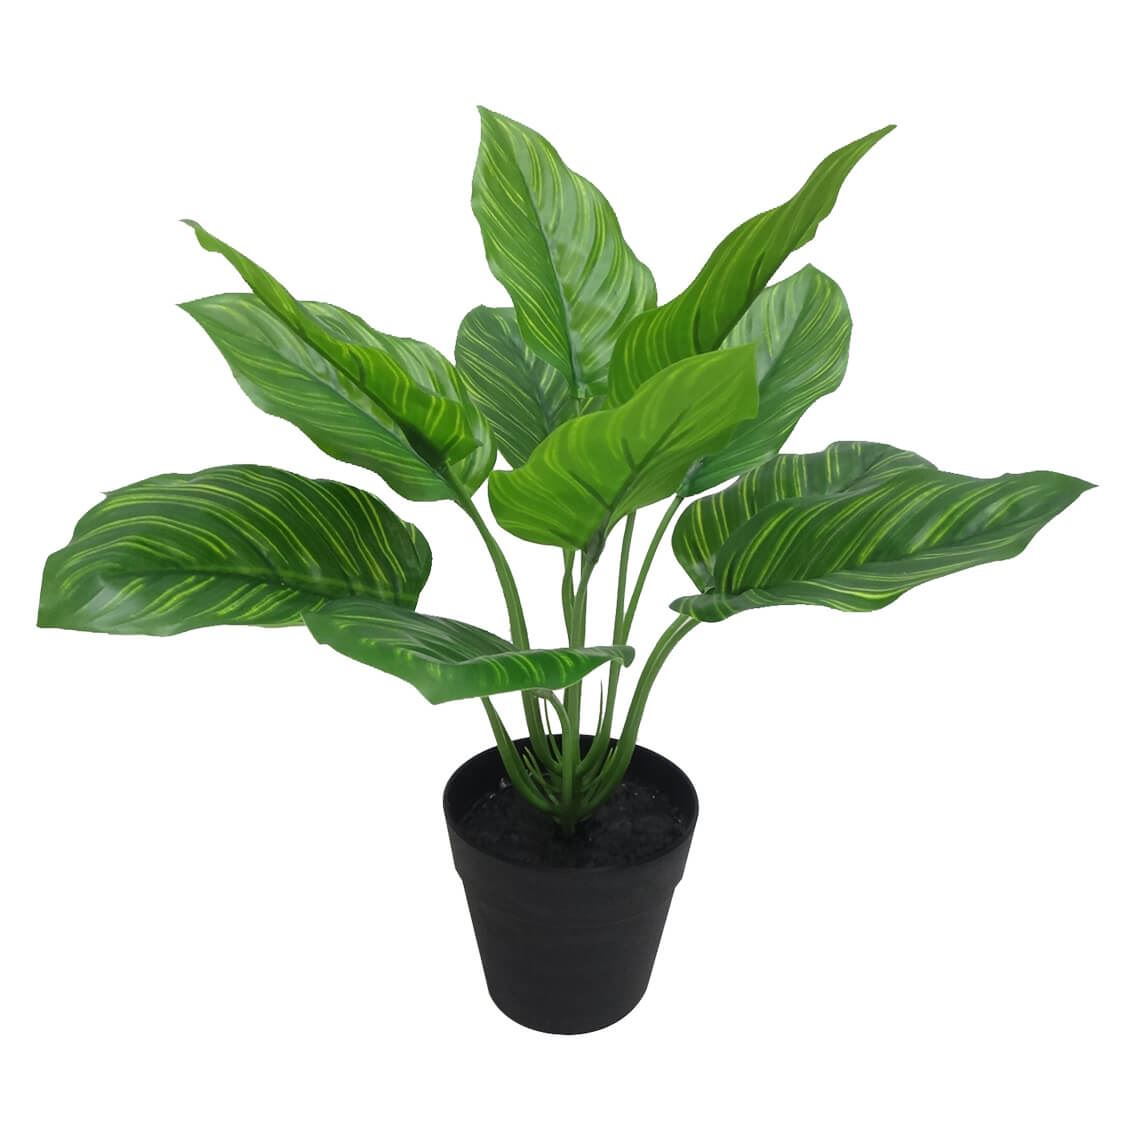 Watermelon Leaf Plant Size W 30cm x D 30cm x H 25cm in Variegated Plastic/Wire Freedom